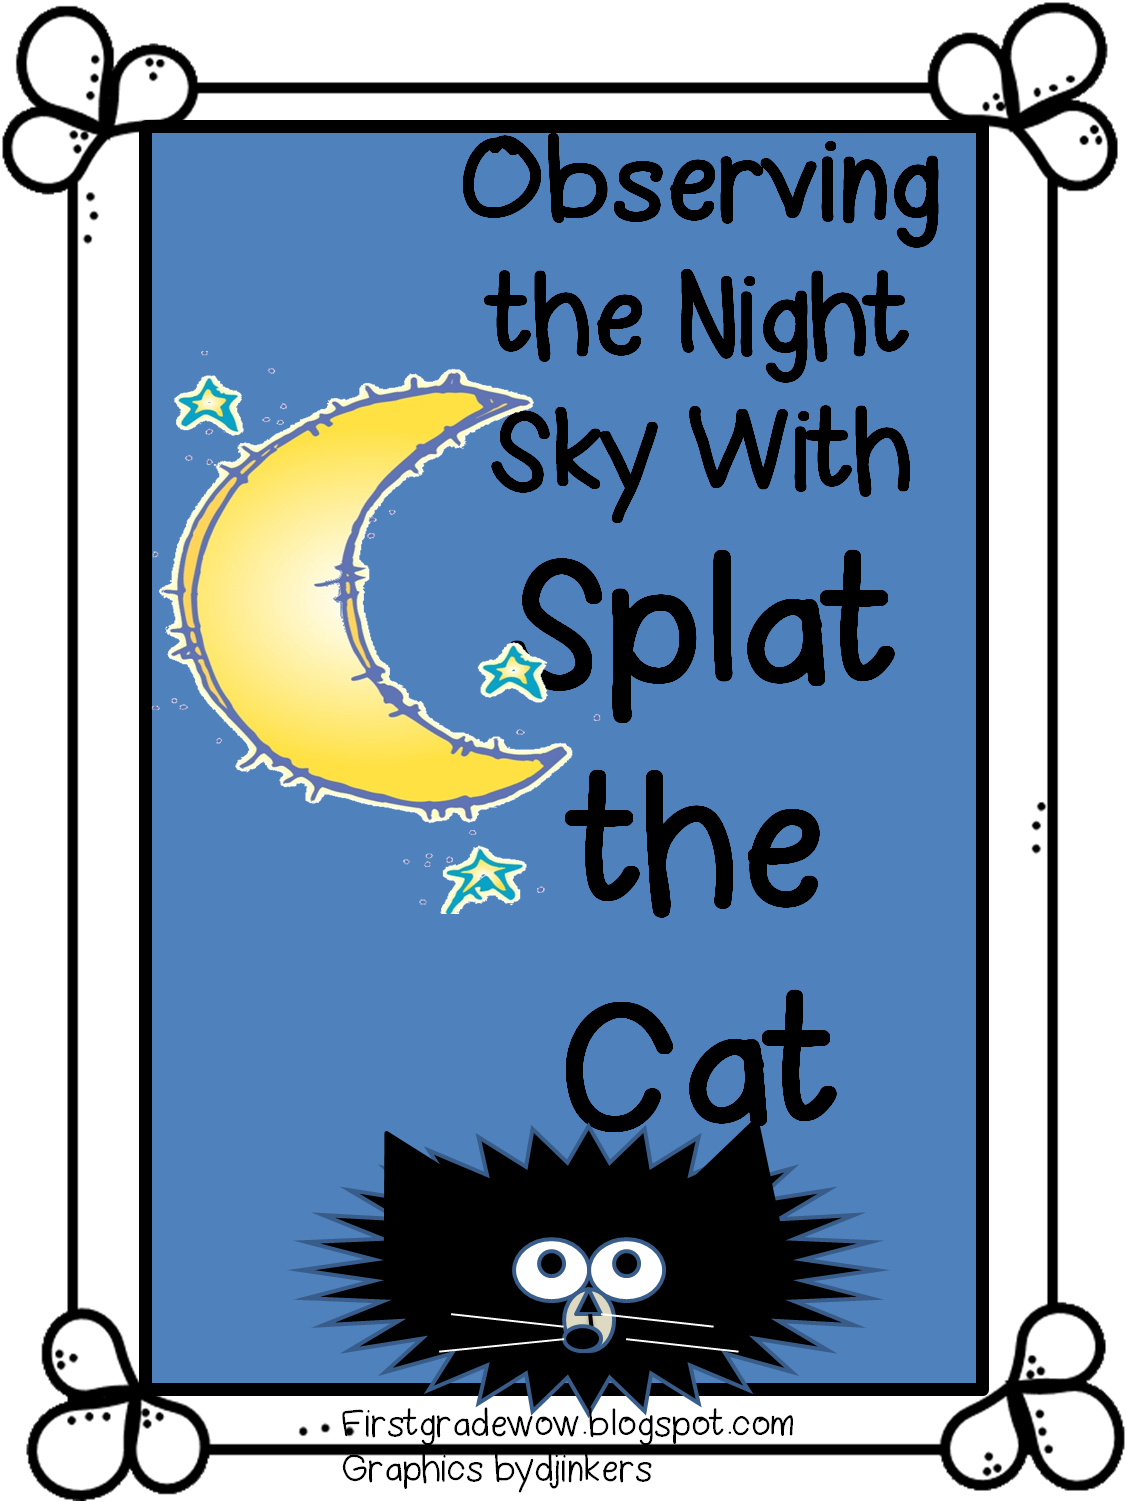 First Grade Wow Observing The Night Sky With Splat